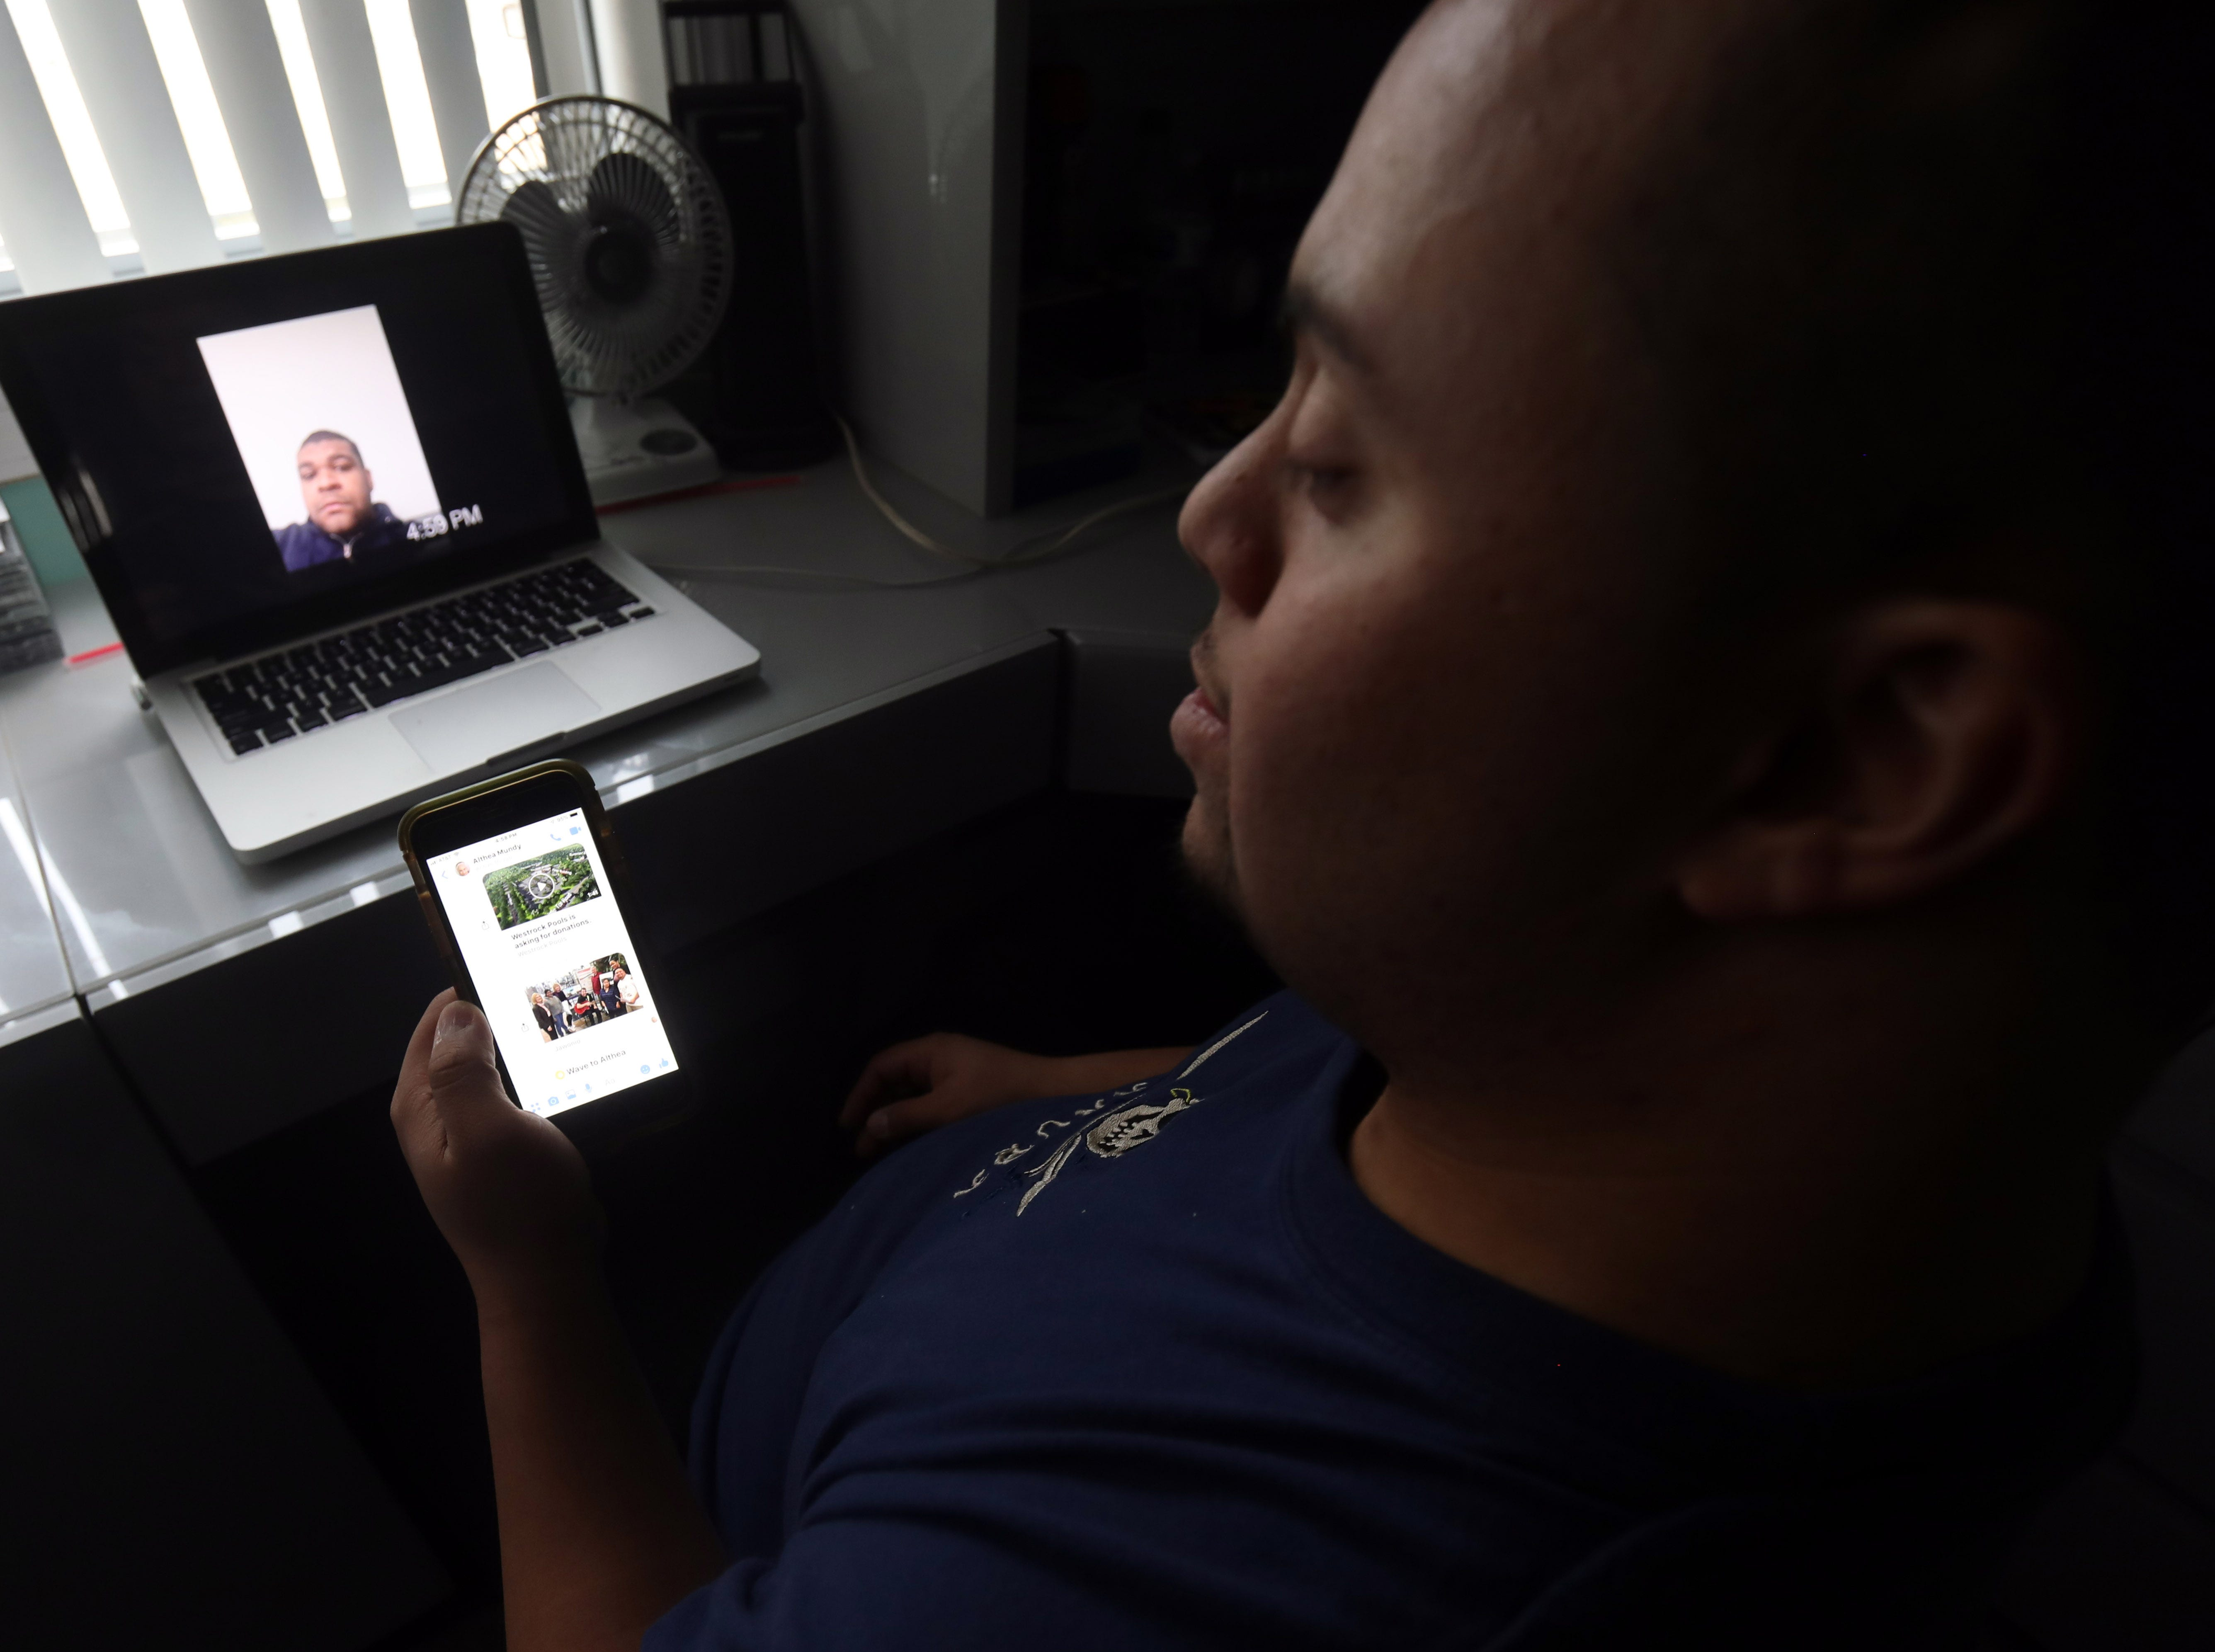 Anthony Mundy, 29 sends his older brother a picture from his phone in his room in Spring Valley March 15, 2019.